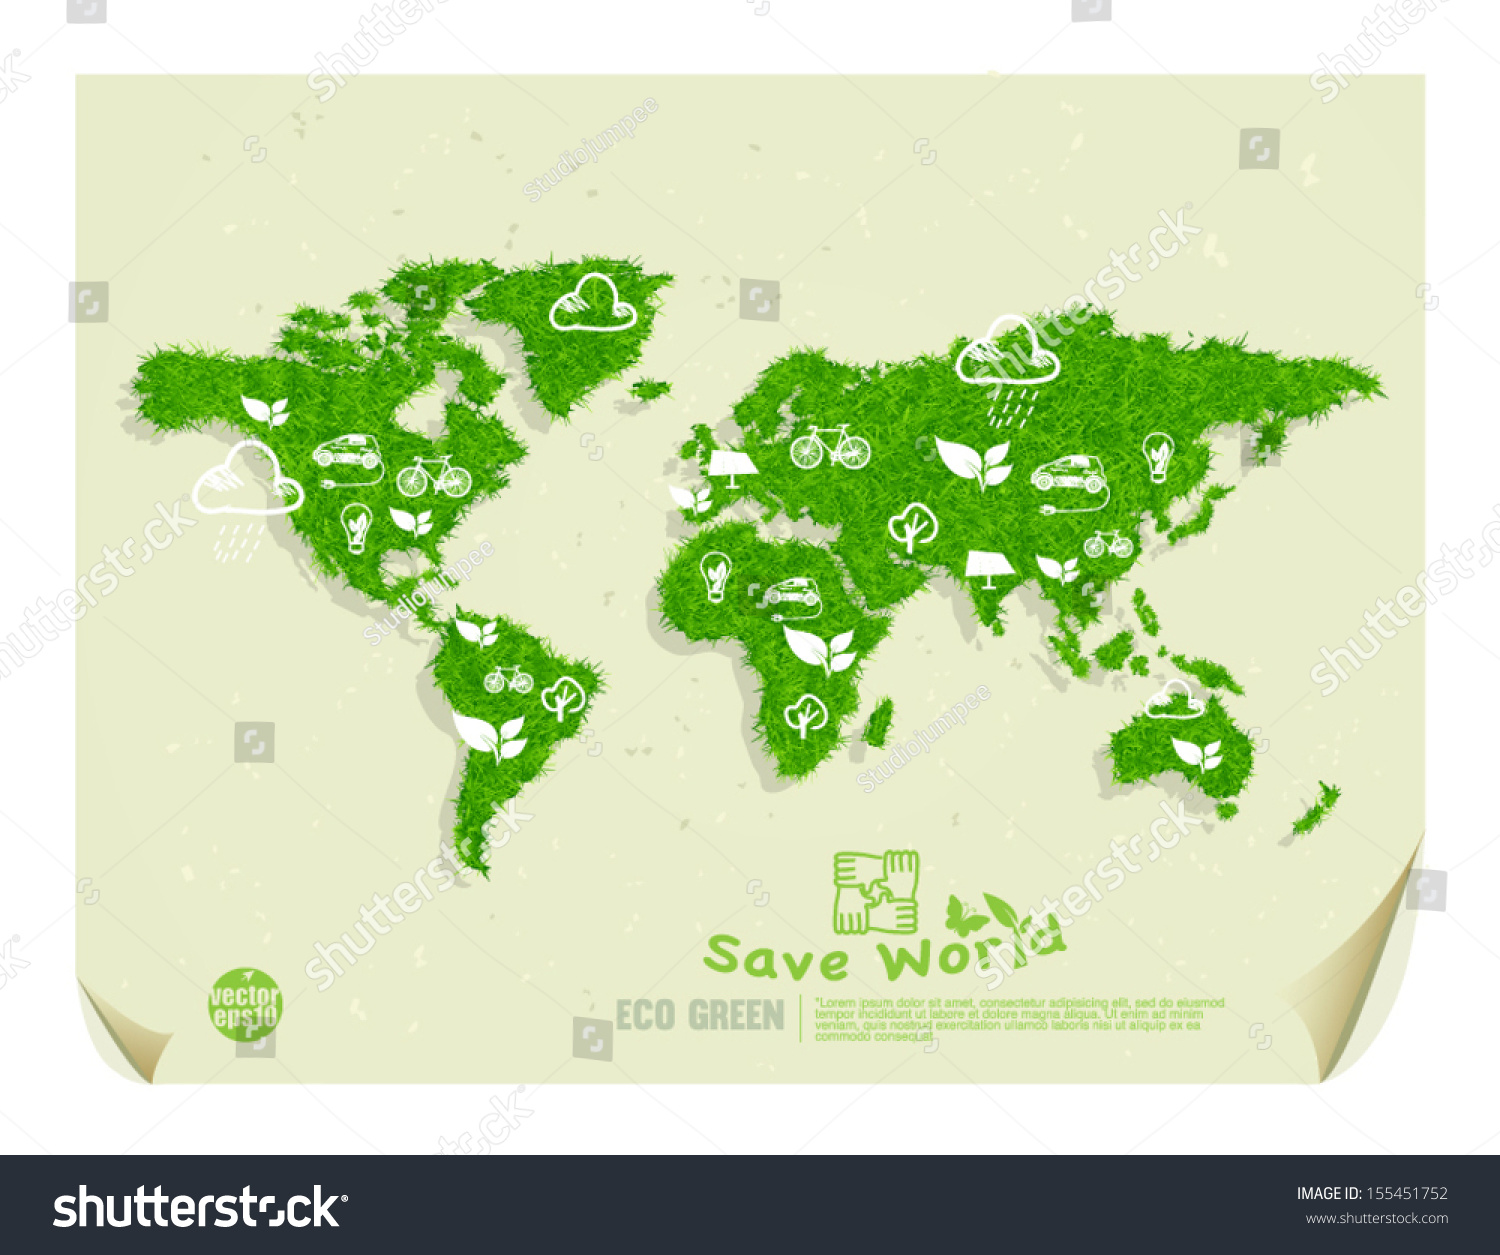 Eco Green Save World Drawing Concept Stock Vector Royalty Free